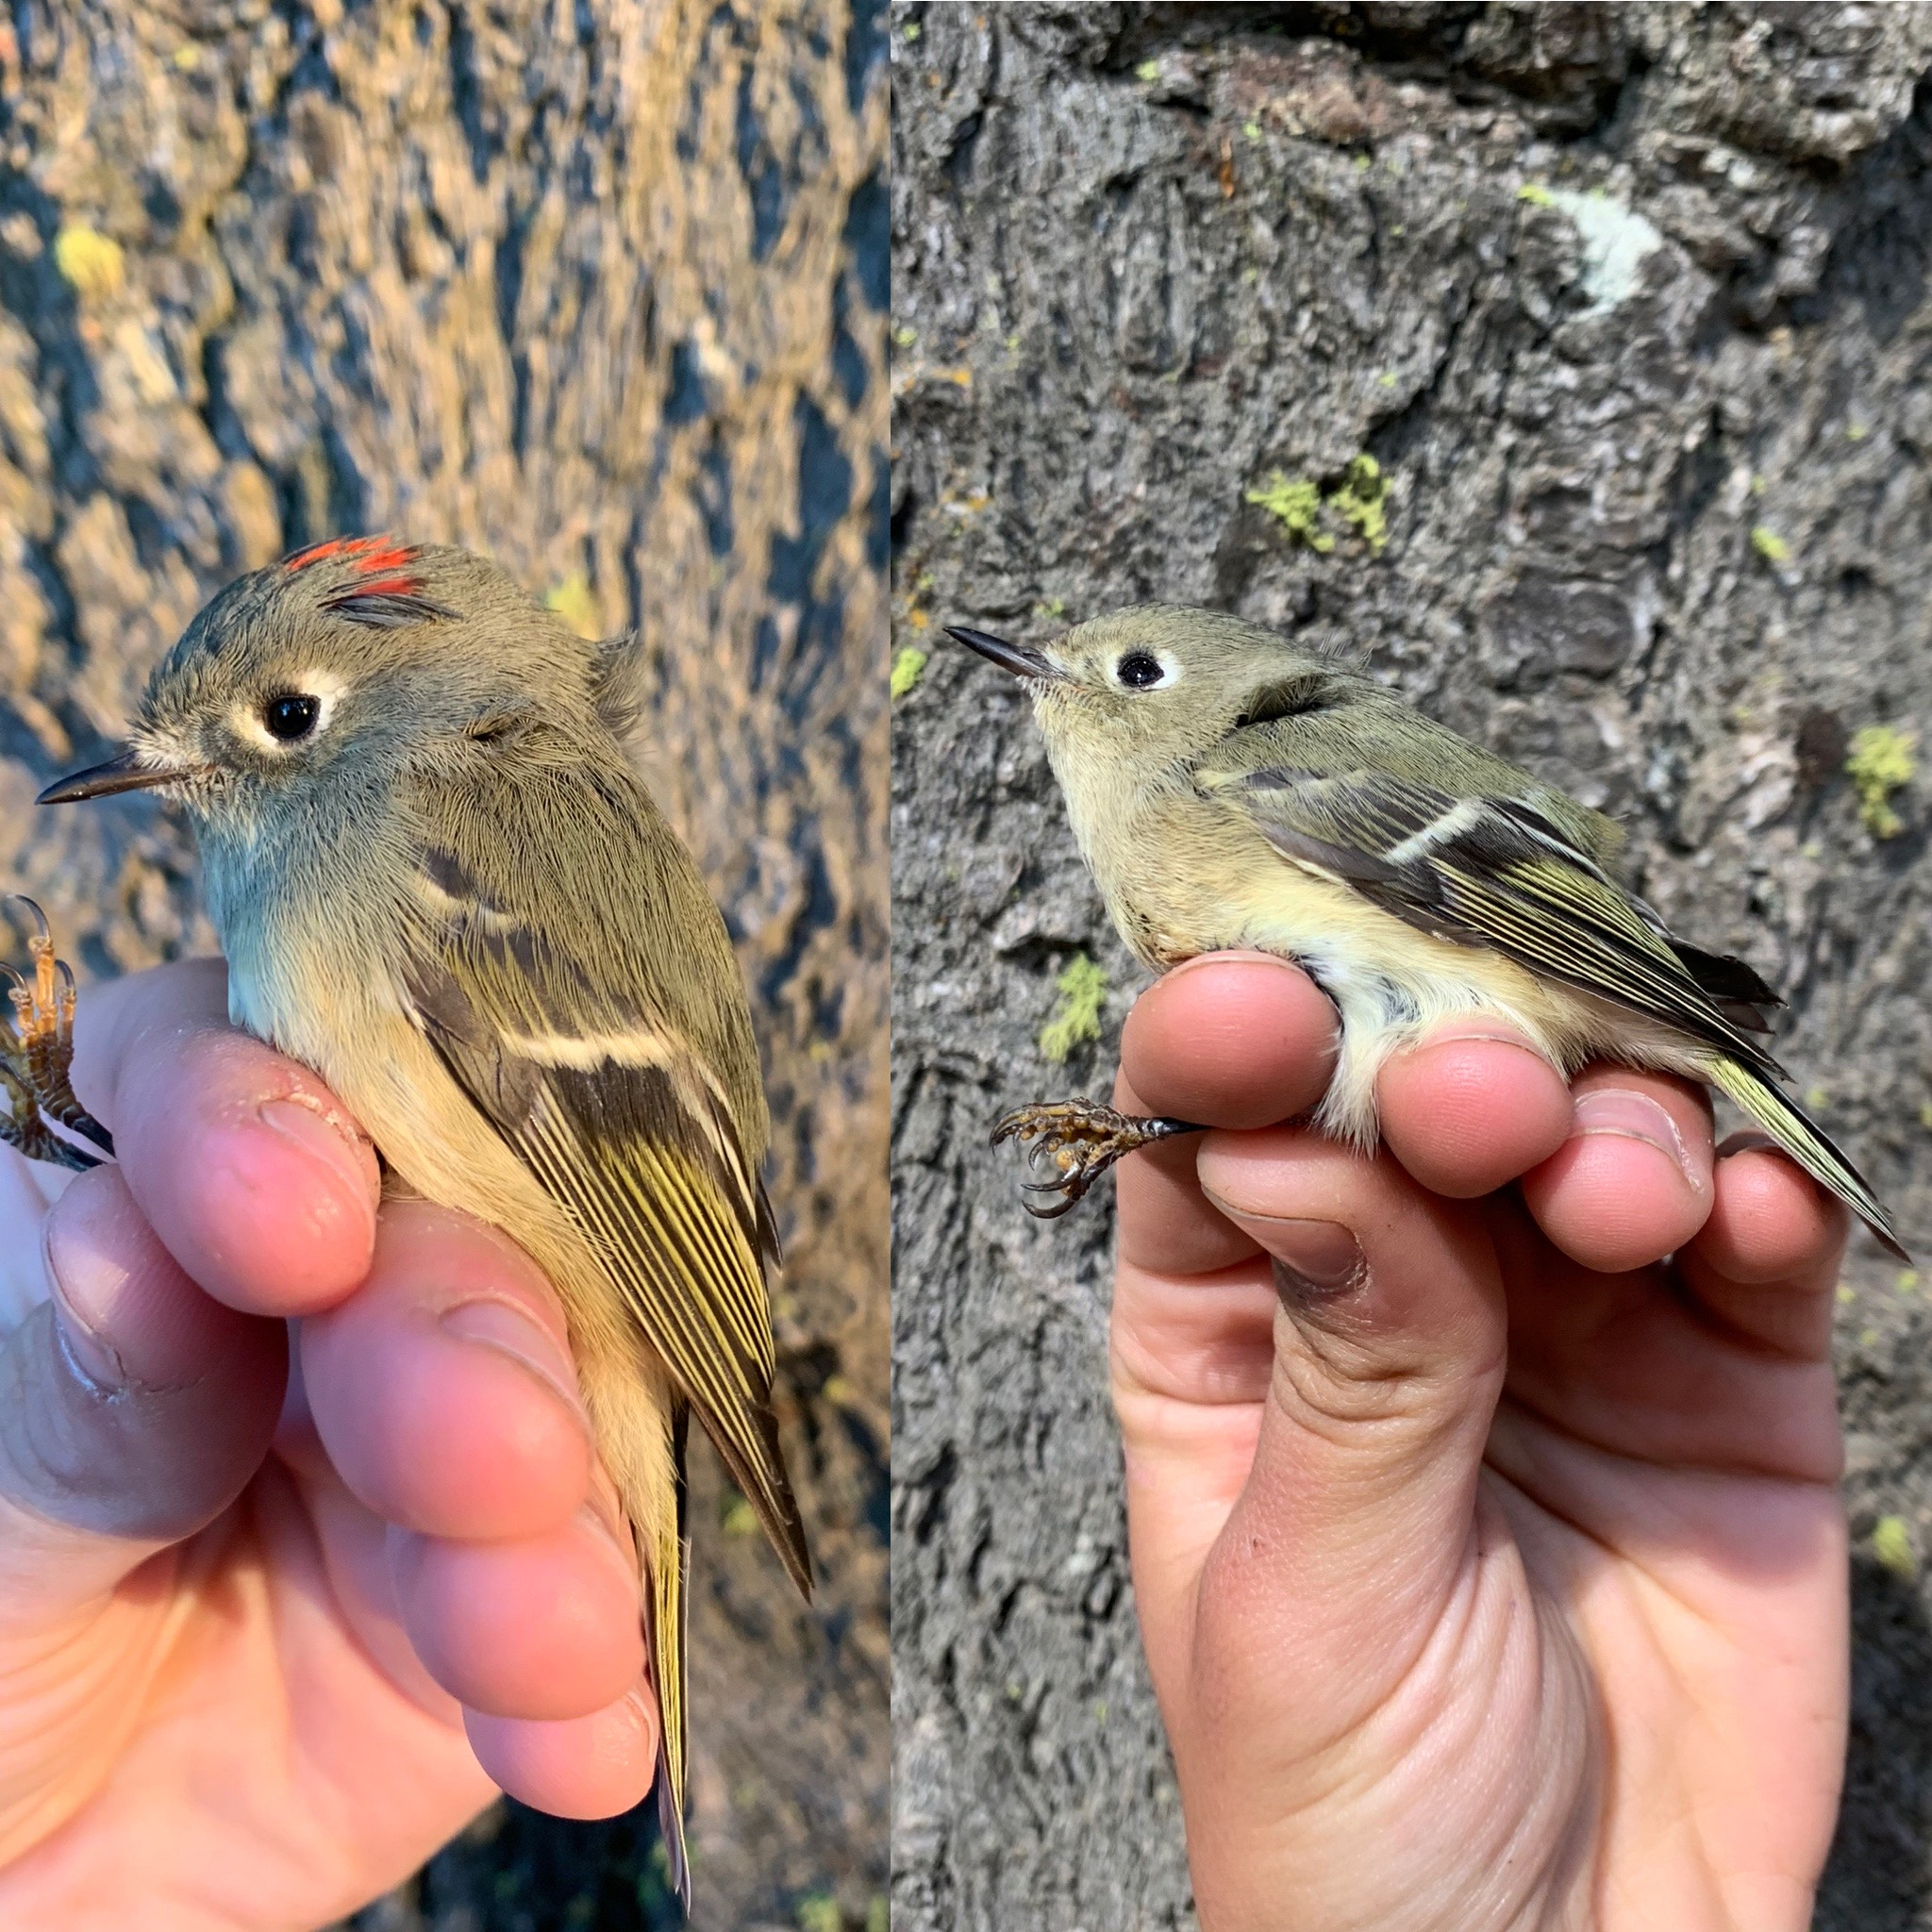 two images show small gray songbirds held by biologists' hands. One bird has a small red spot of feathers on its head